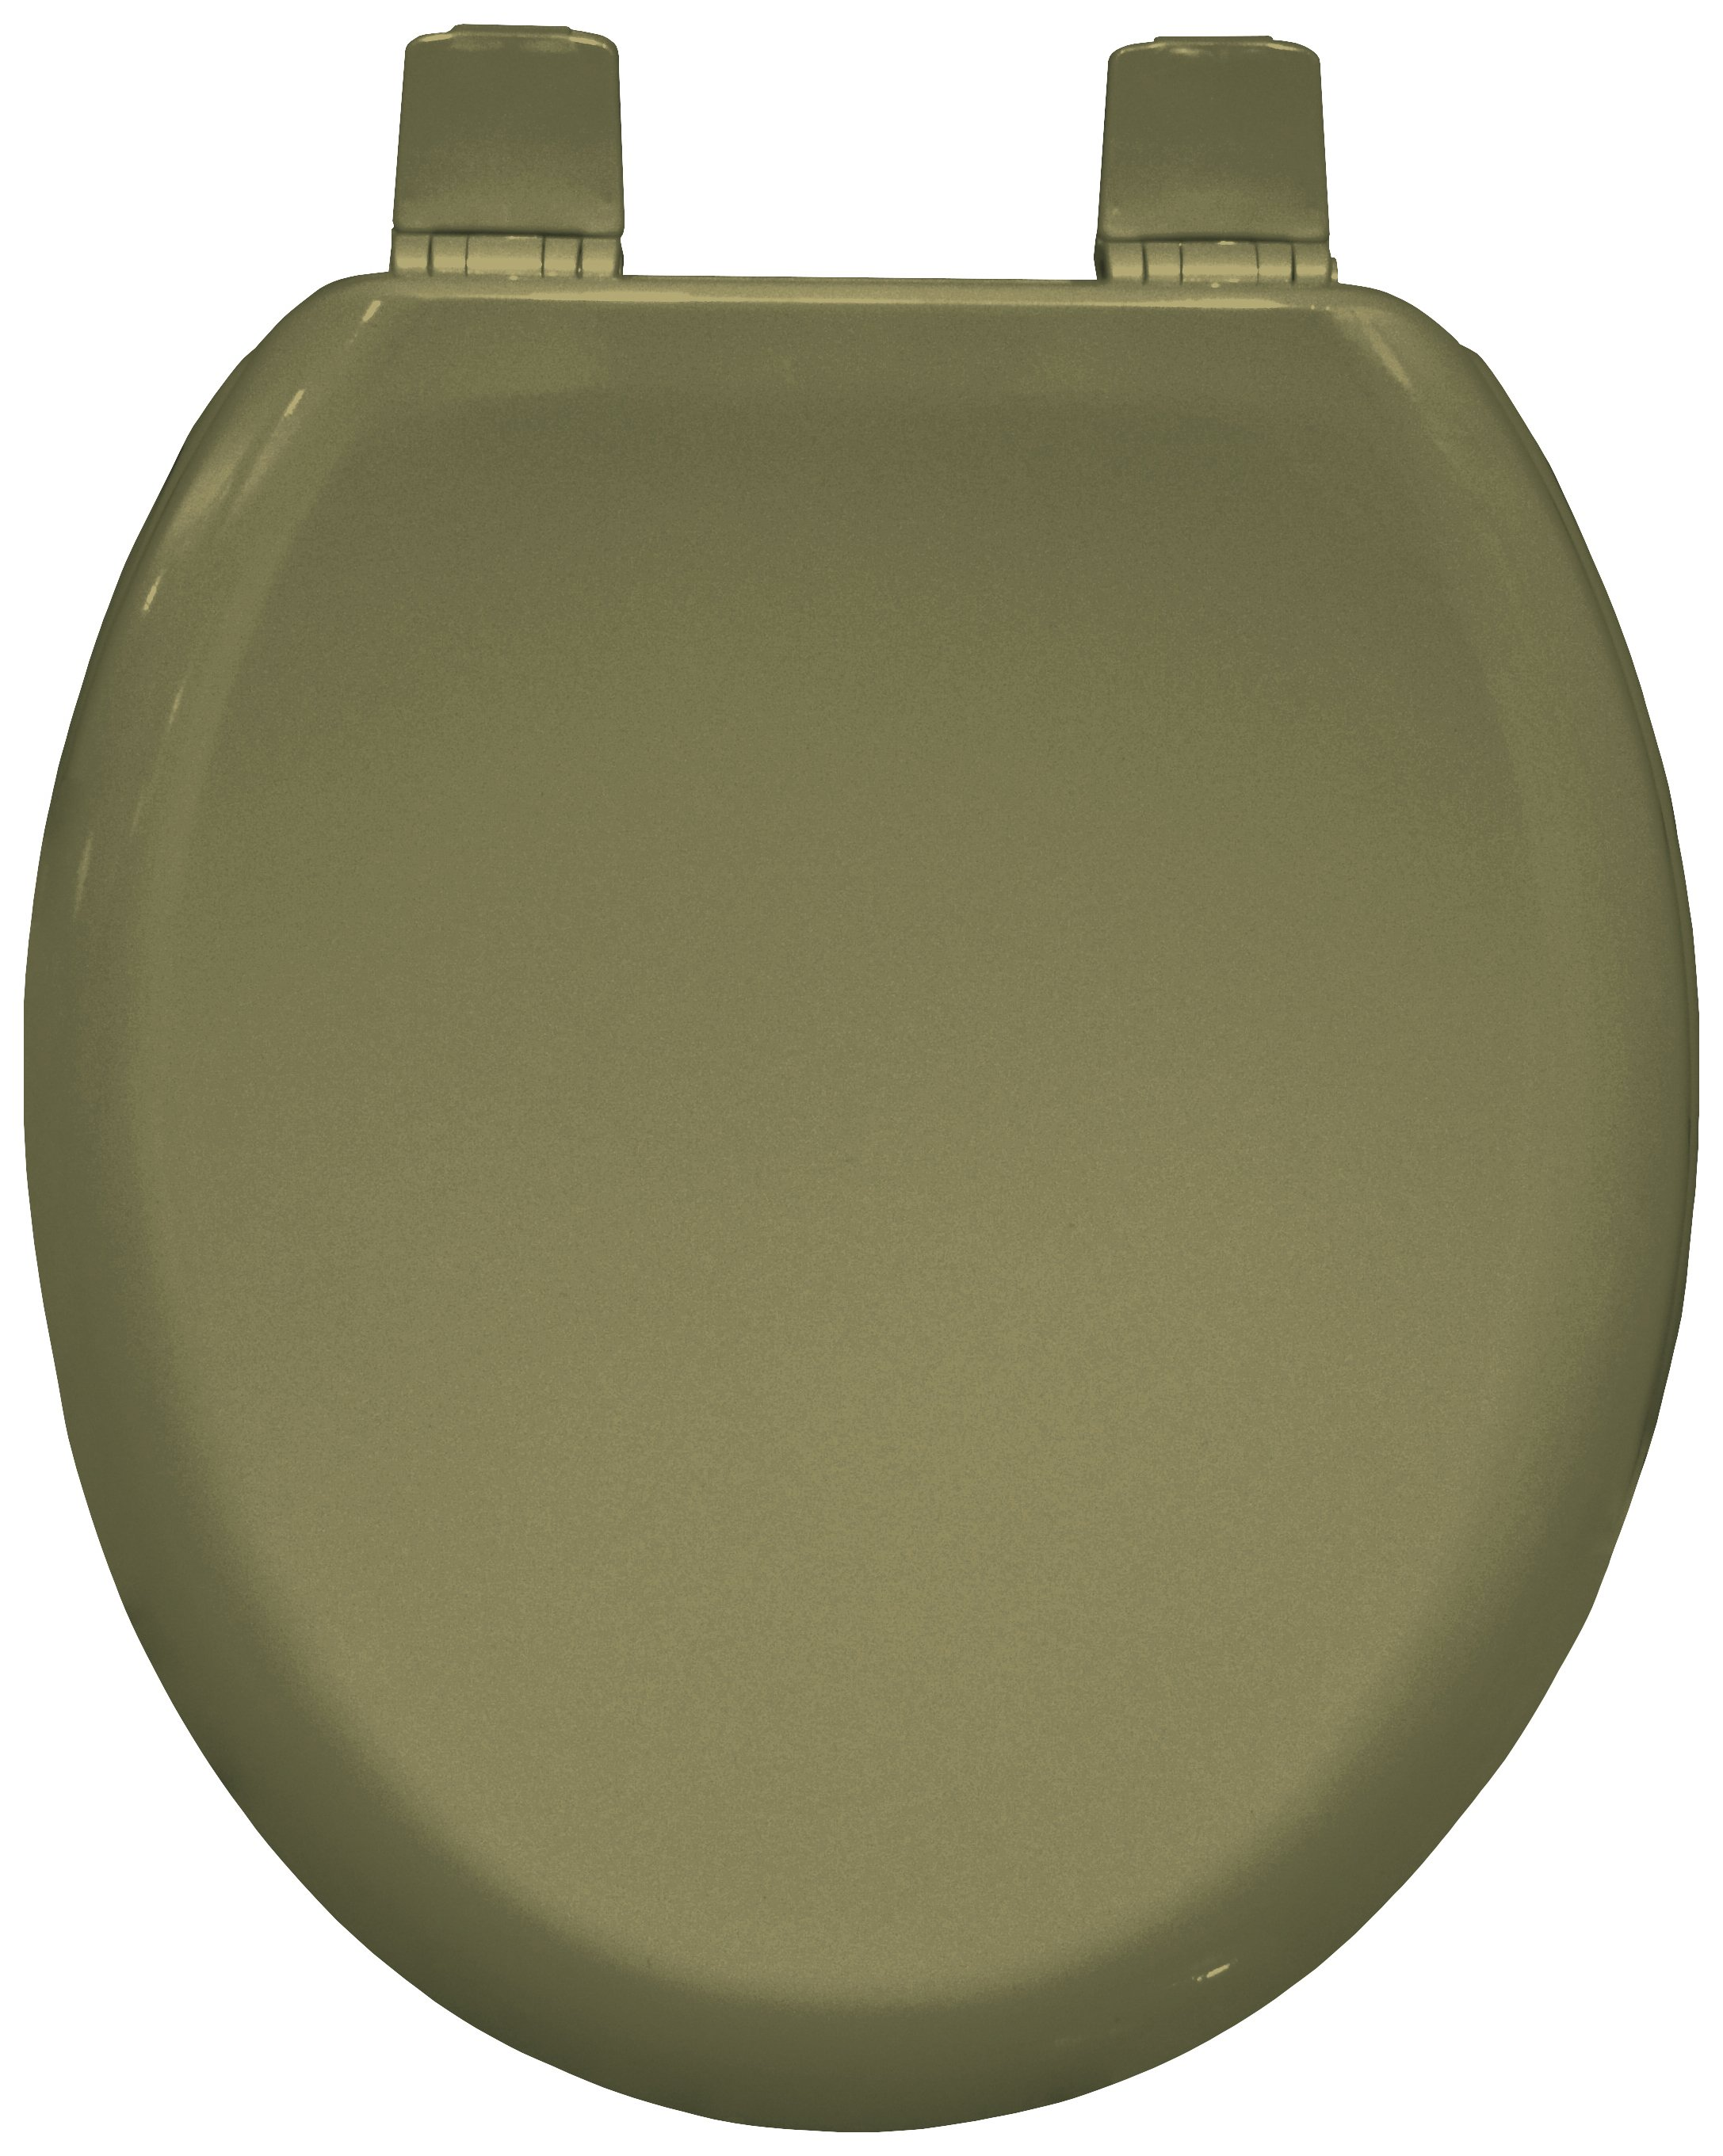 Image of Bemis - Chicago Moulded Wood - Toilet Seat - Green